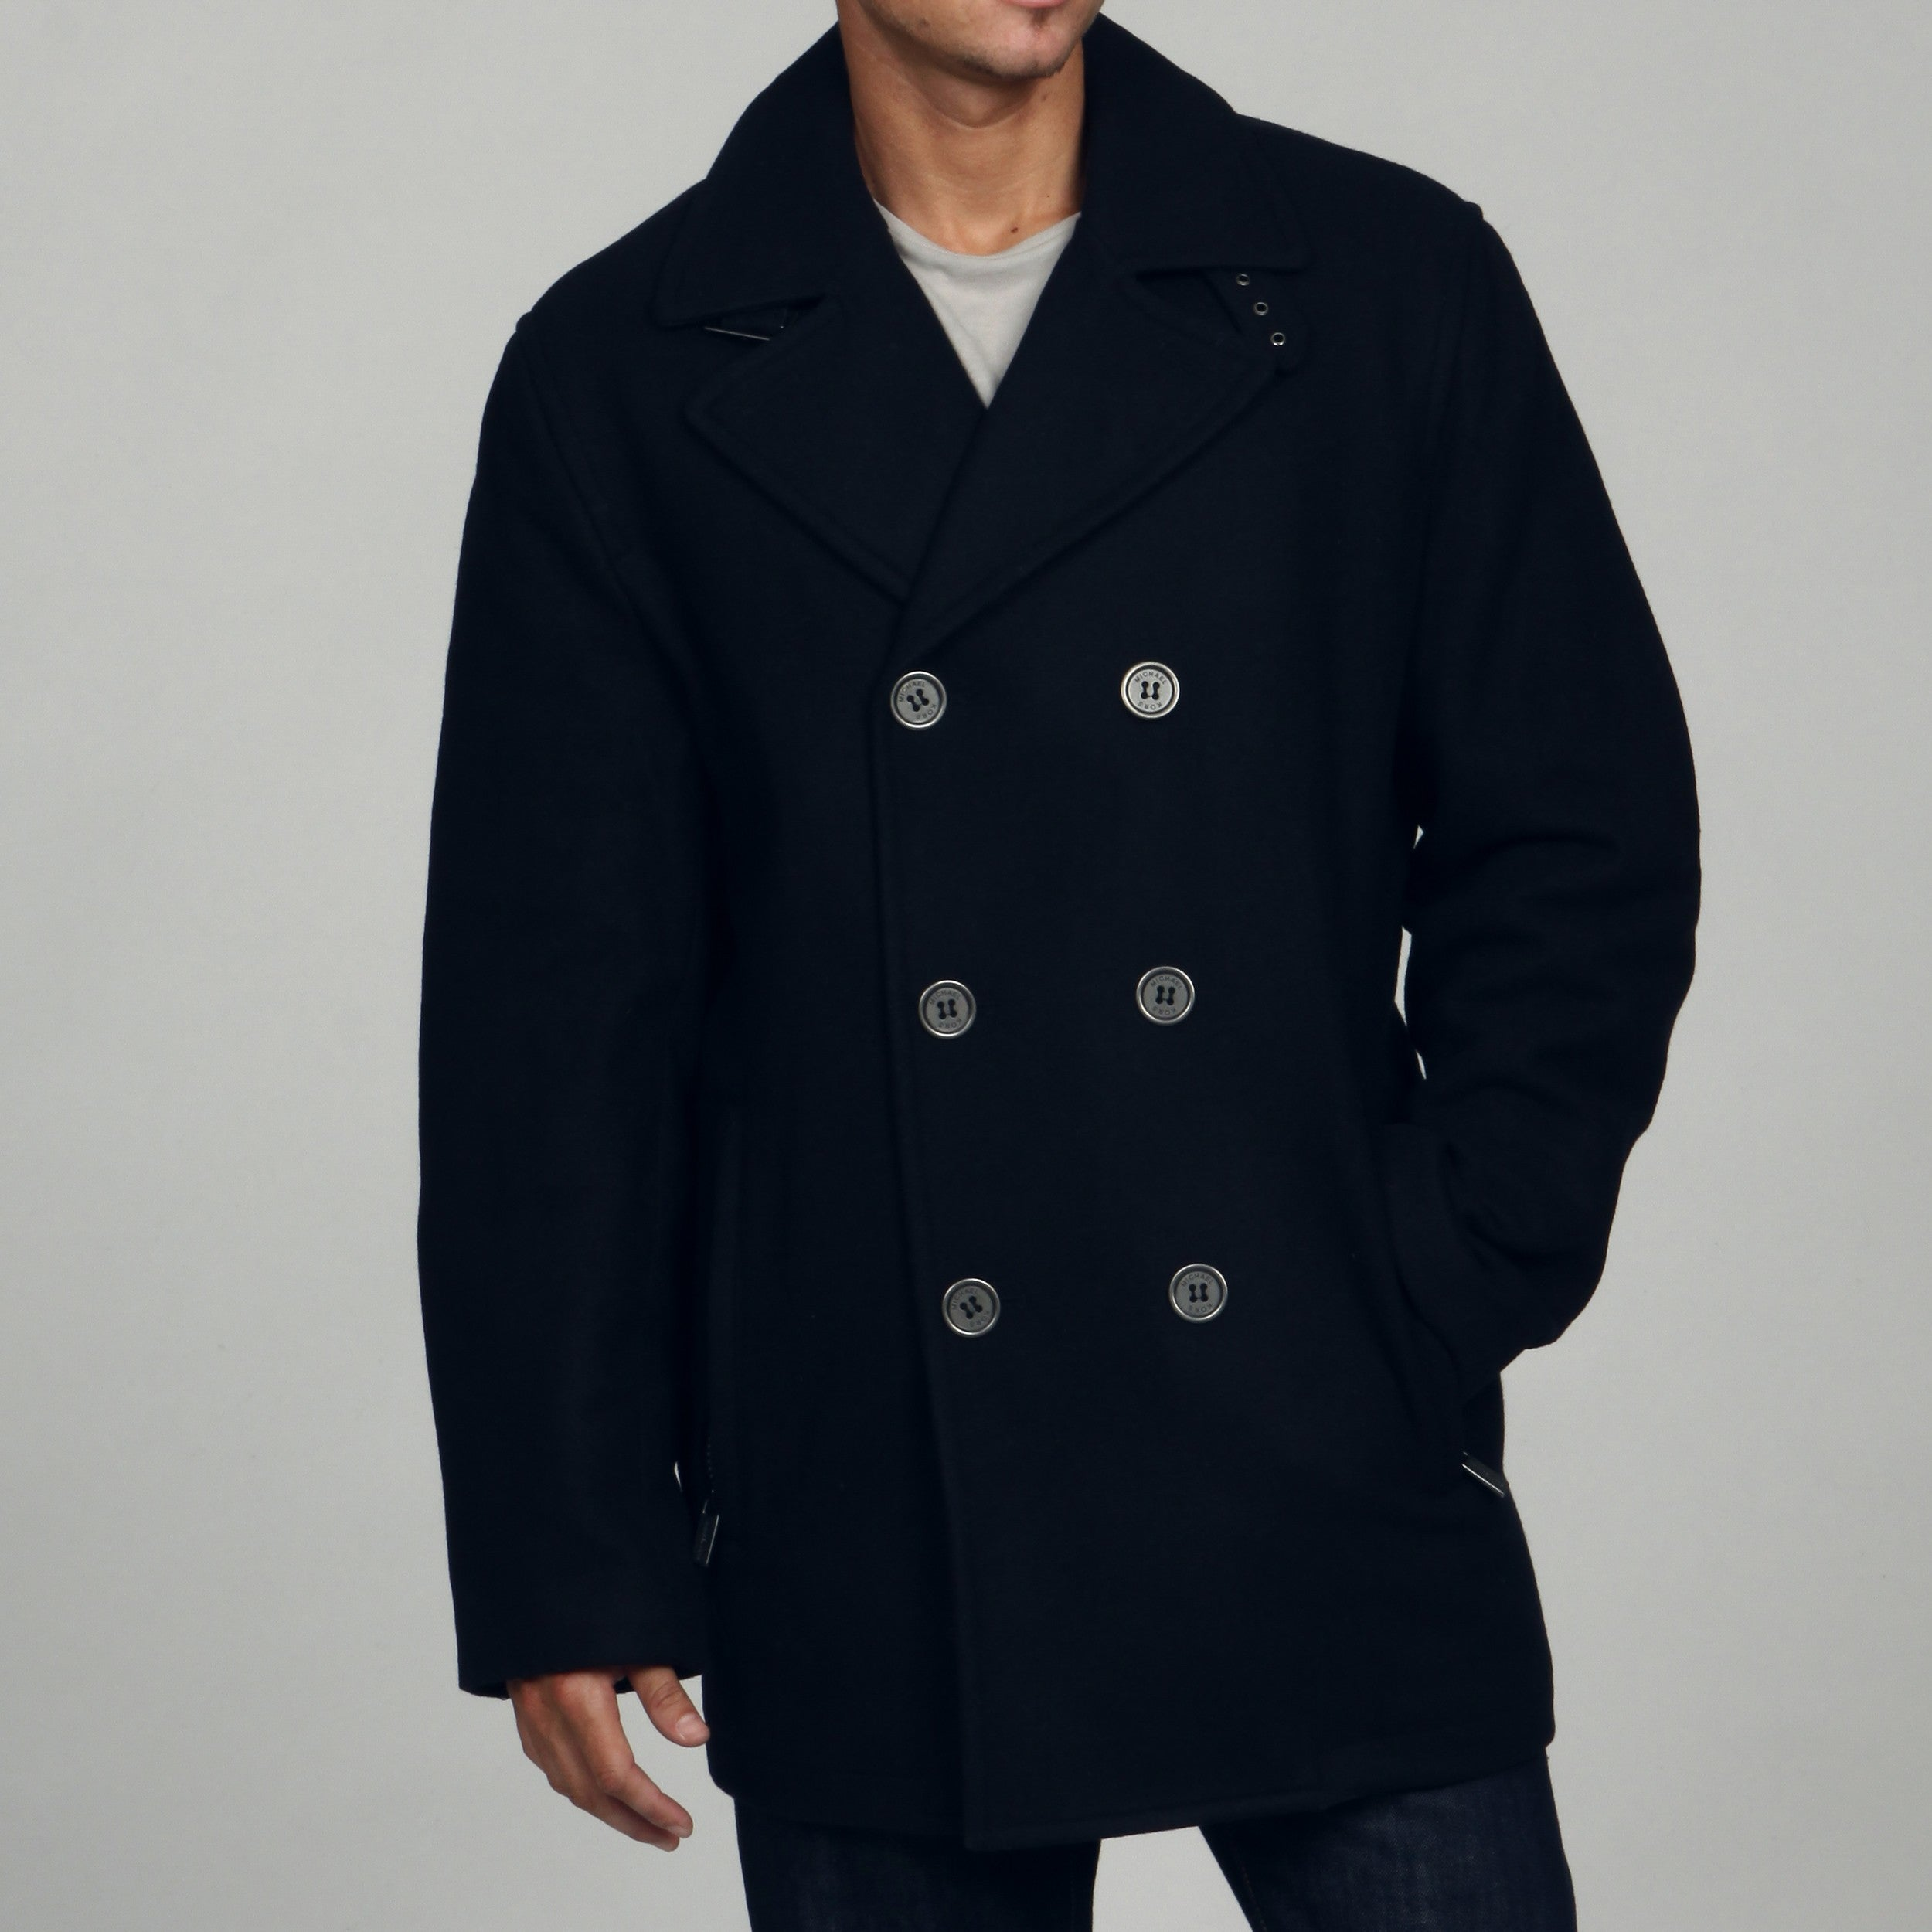 66e56a76d3c Shop MICHAEL Michael Kors Men s Wool Blend Double Breasted Peacoat FINAL  SALE - Free Shipping Today - Overstock - 6128690